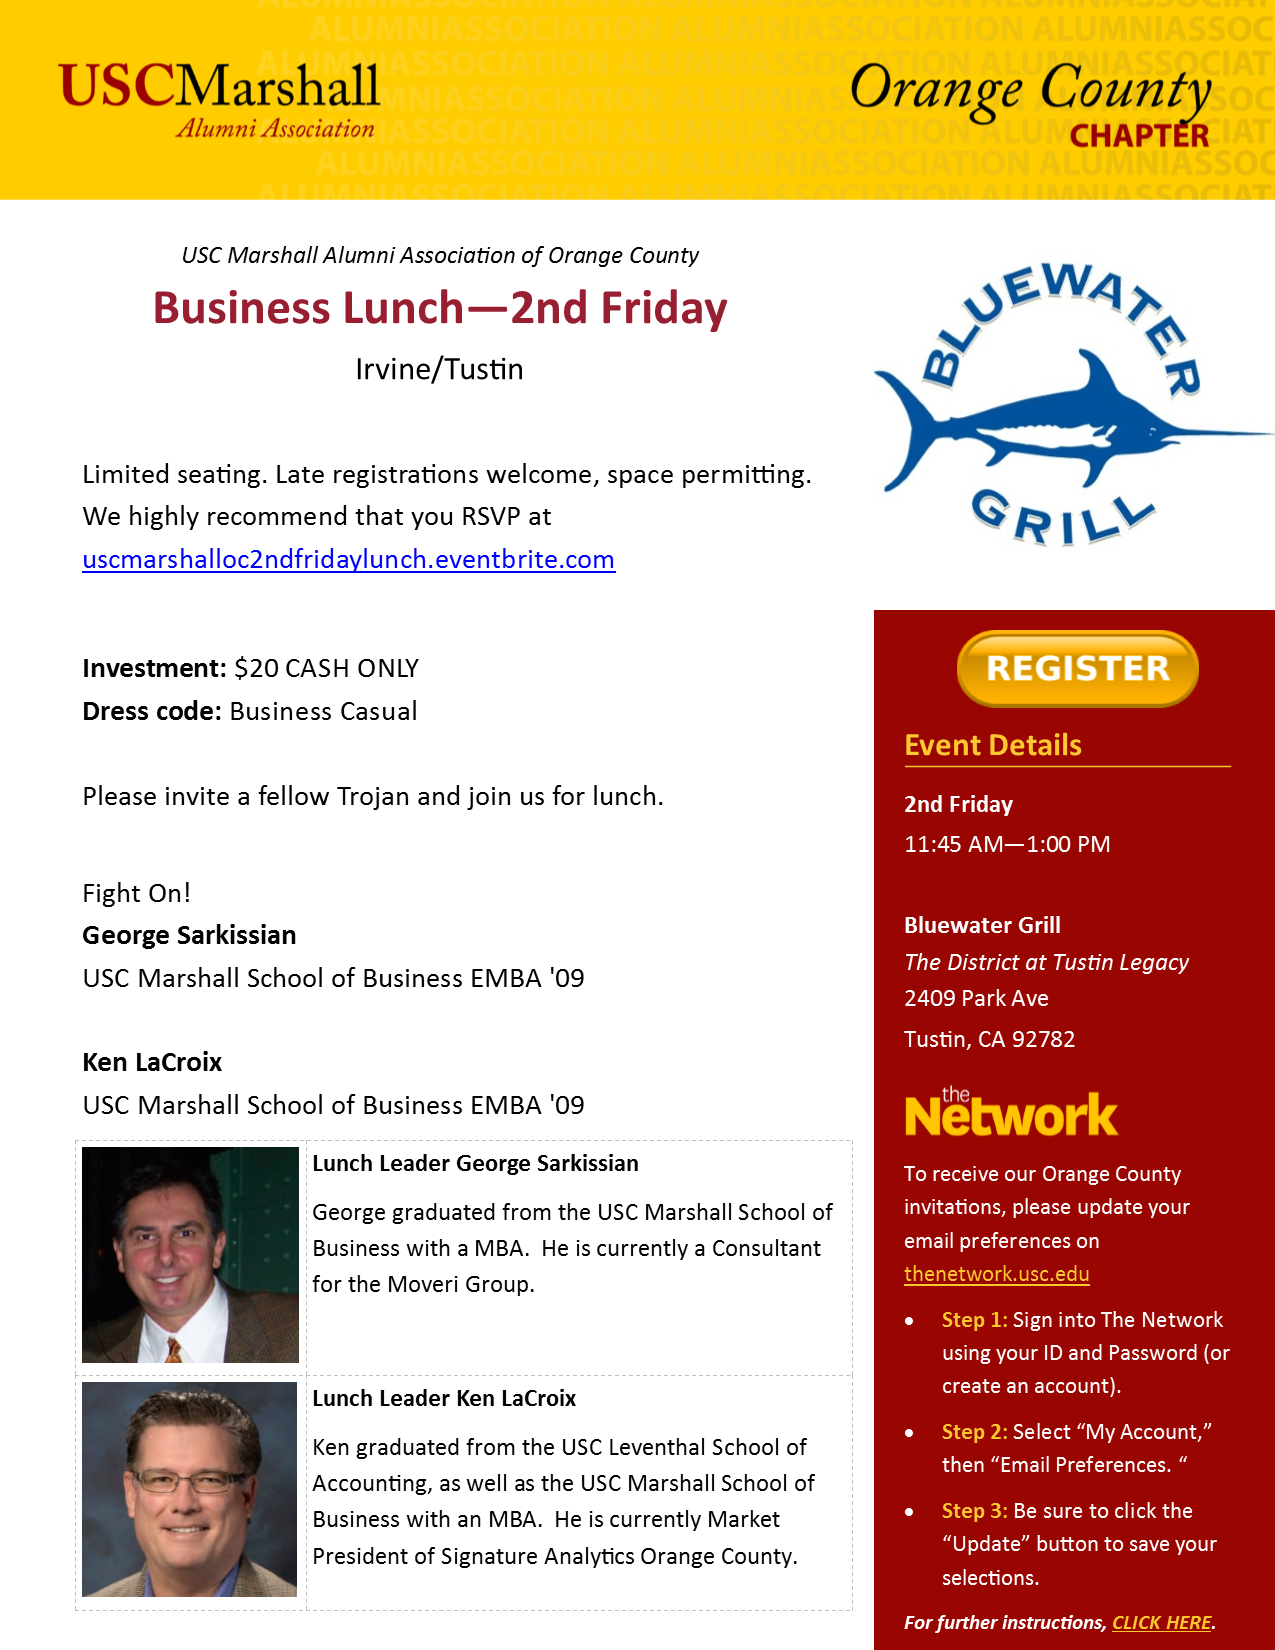 2nd Friday Lunch